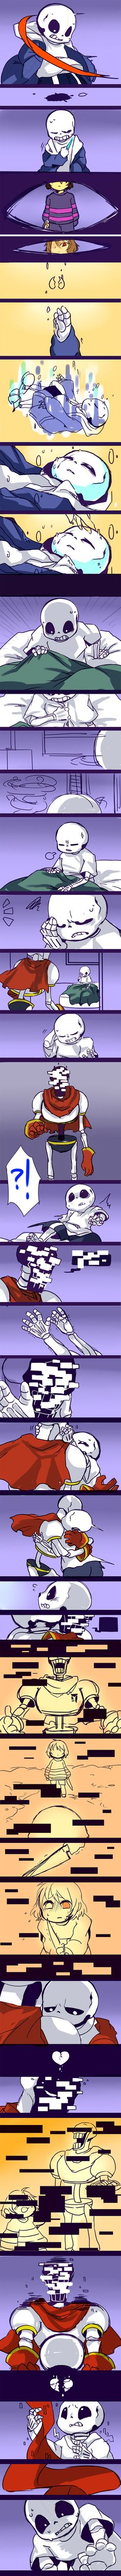 undertale-first por kuzukago Undertale Undertale, Undertale Pictures, Sad Comics, Toby Fox, Underswap, Vocaloid, Daddy, Fandoms, Bad Timing